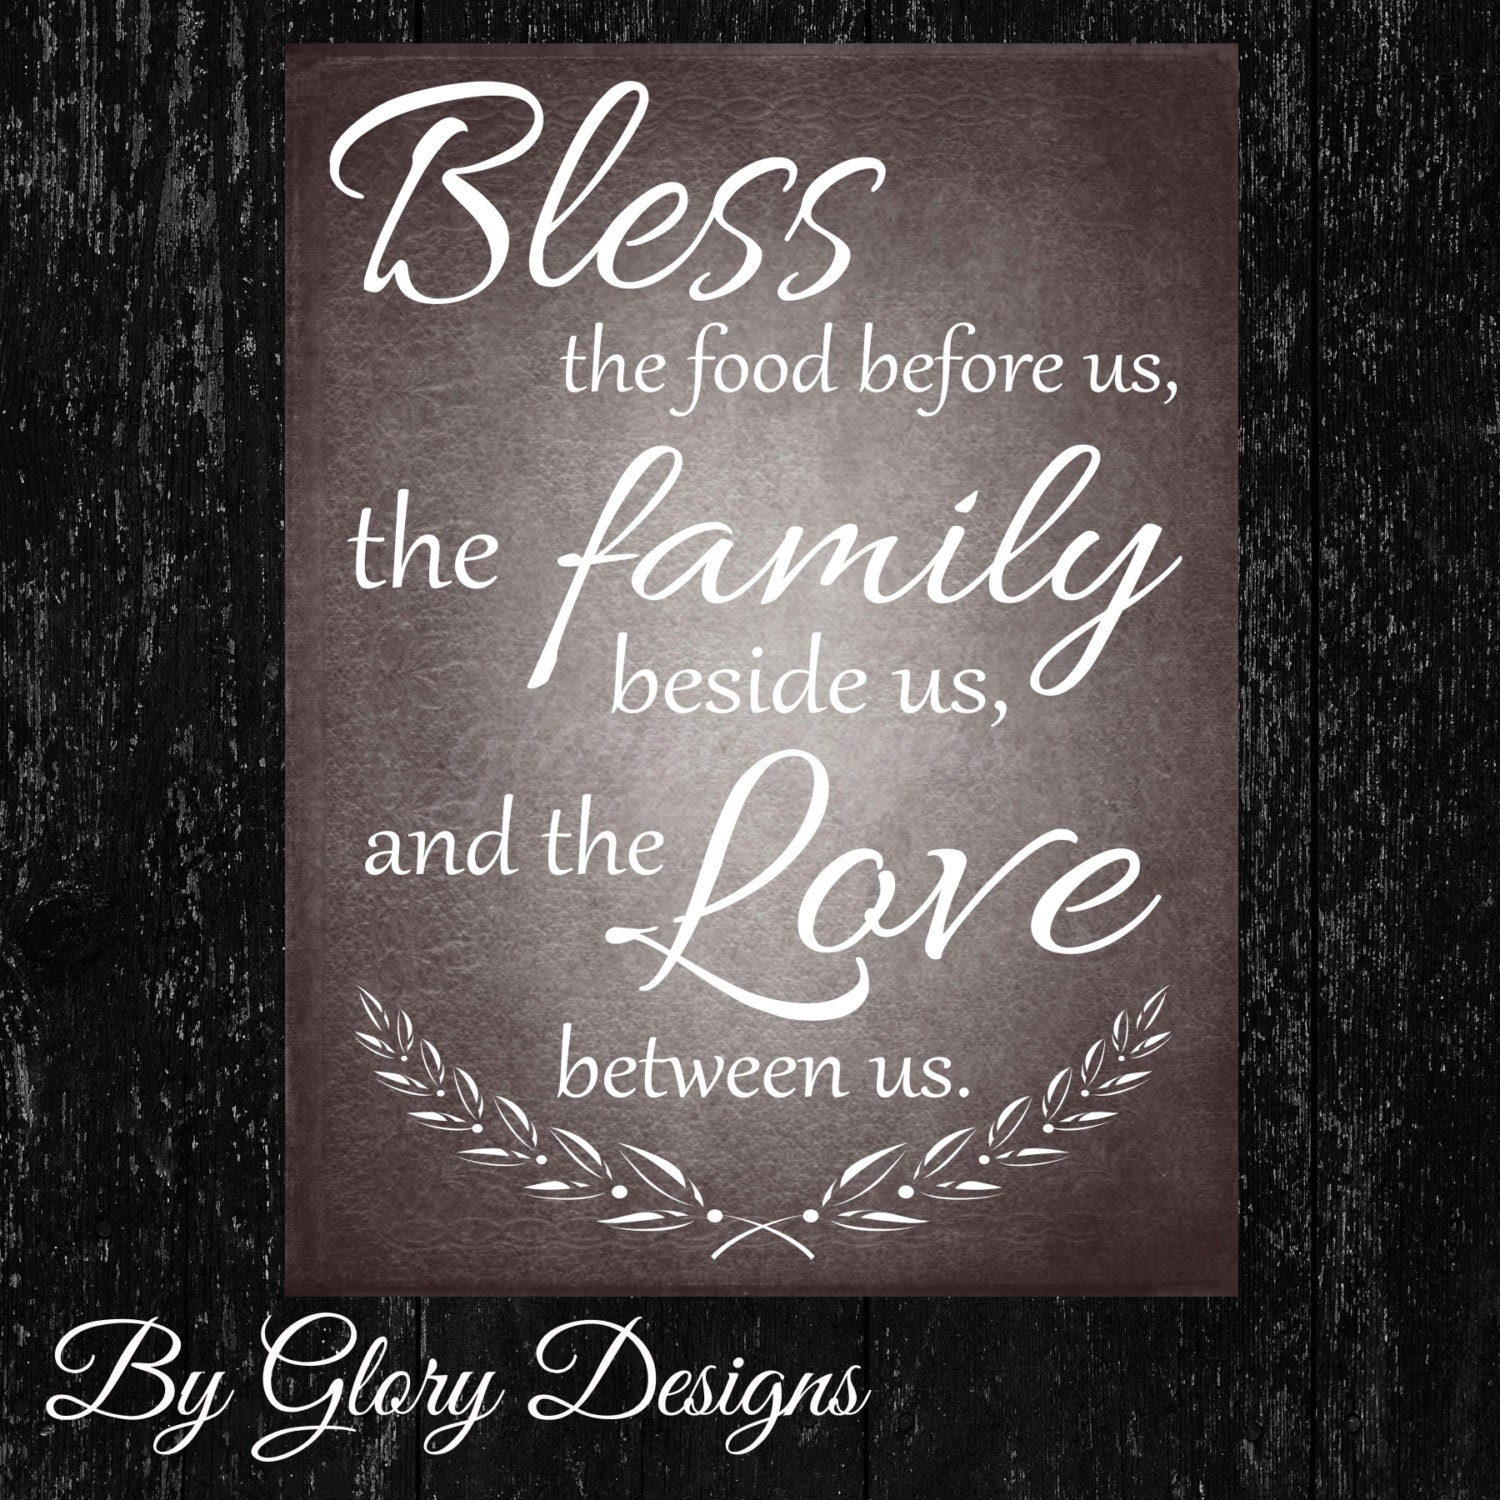 Jewish Wedding Wishes Quotes: Wedding Food Blessings Quotes. QuotesGram